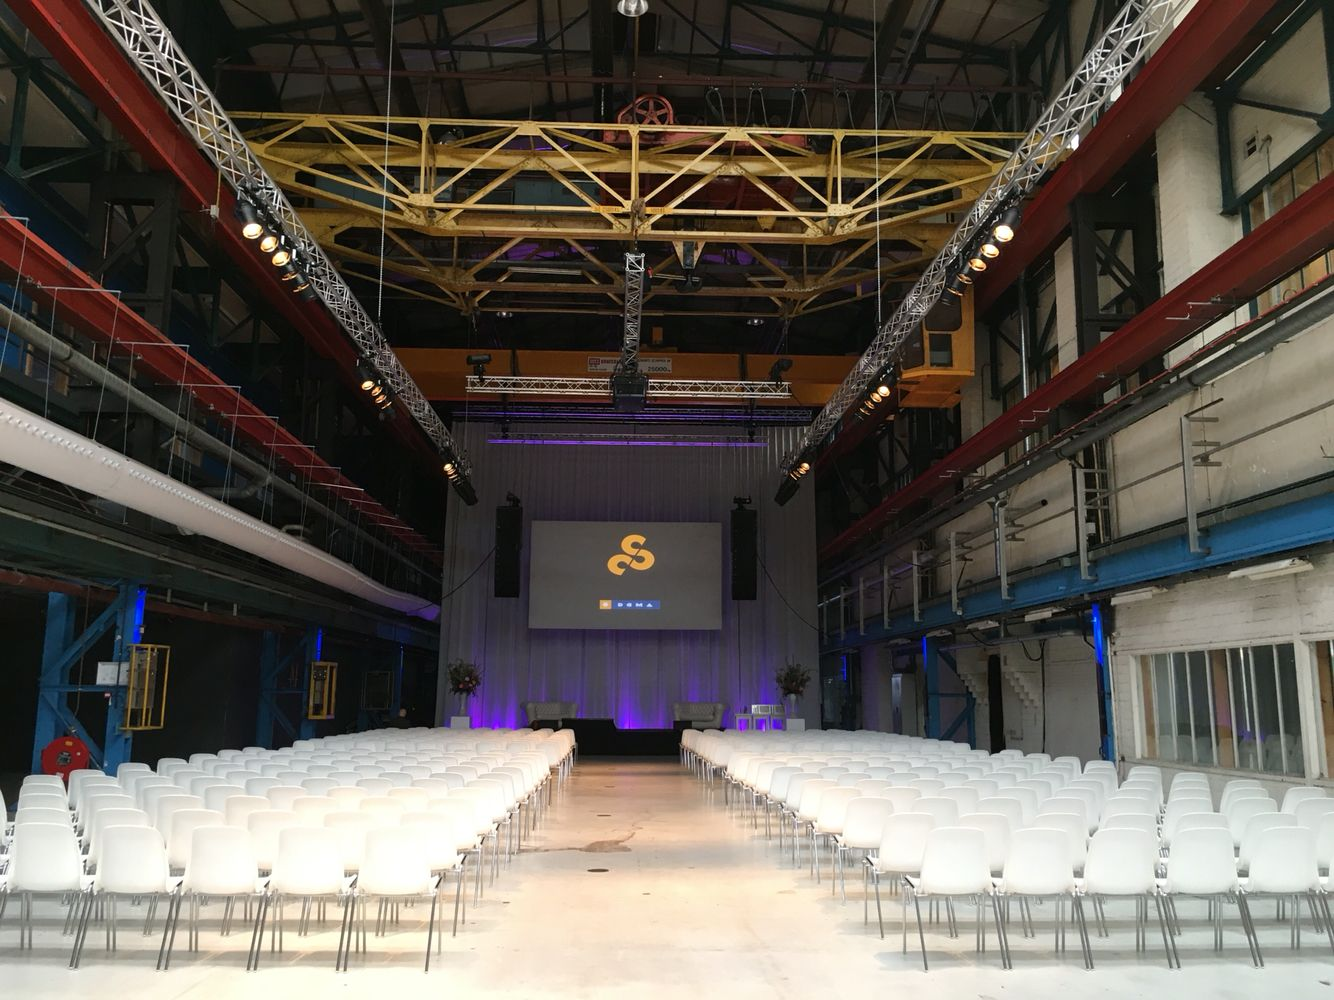 Gedempte Houthal Amsterdam | DDMA E-mail Summit 2016 | 450p | #dagvoorzitter #event #lokatie